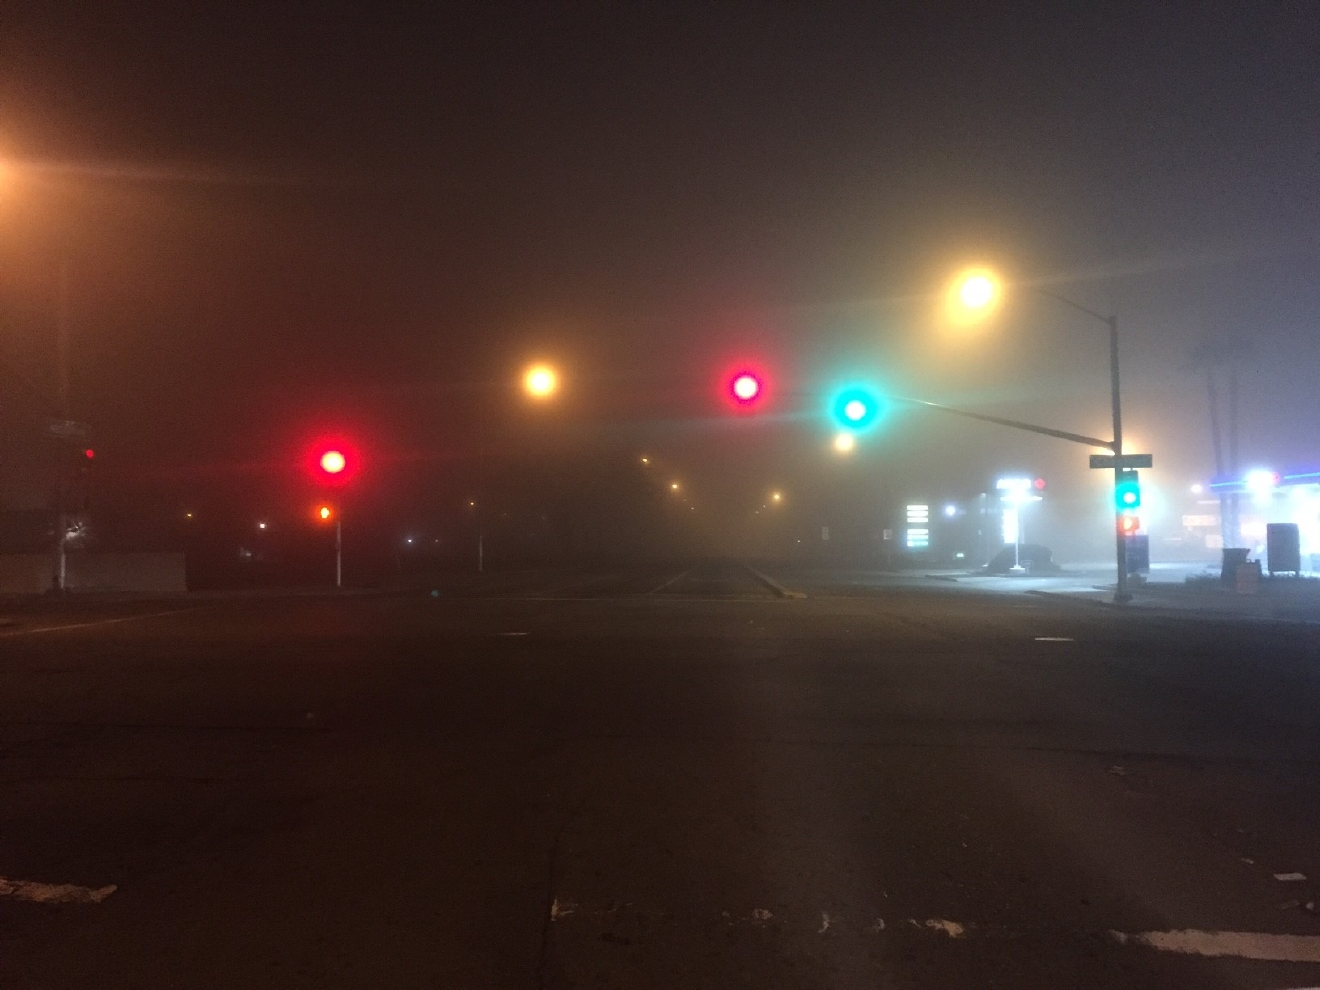 Foggy Wednesday morning in Fresno by Ryan Hudgins 1/25/17